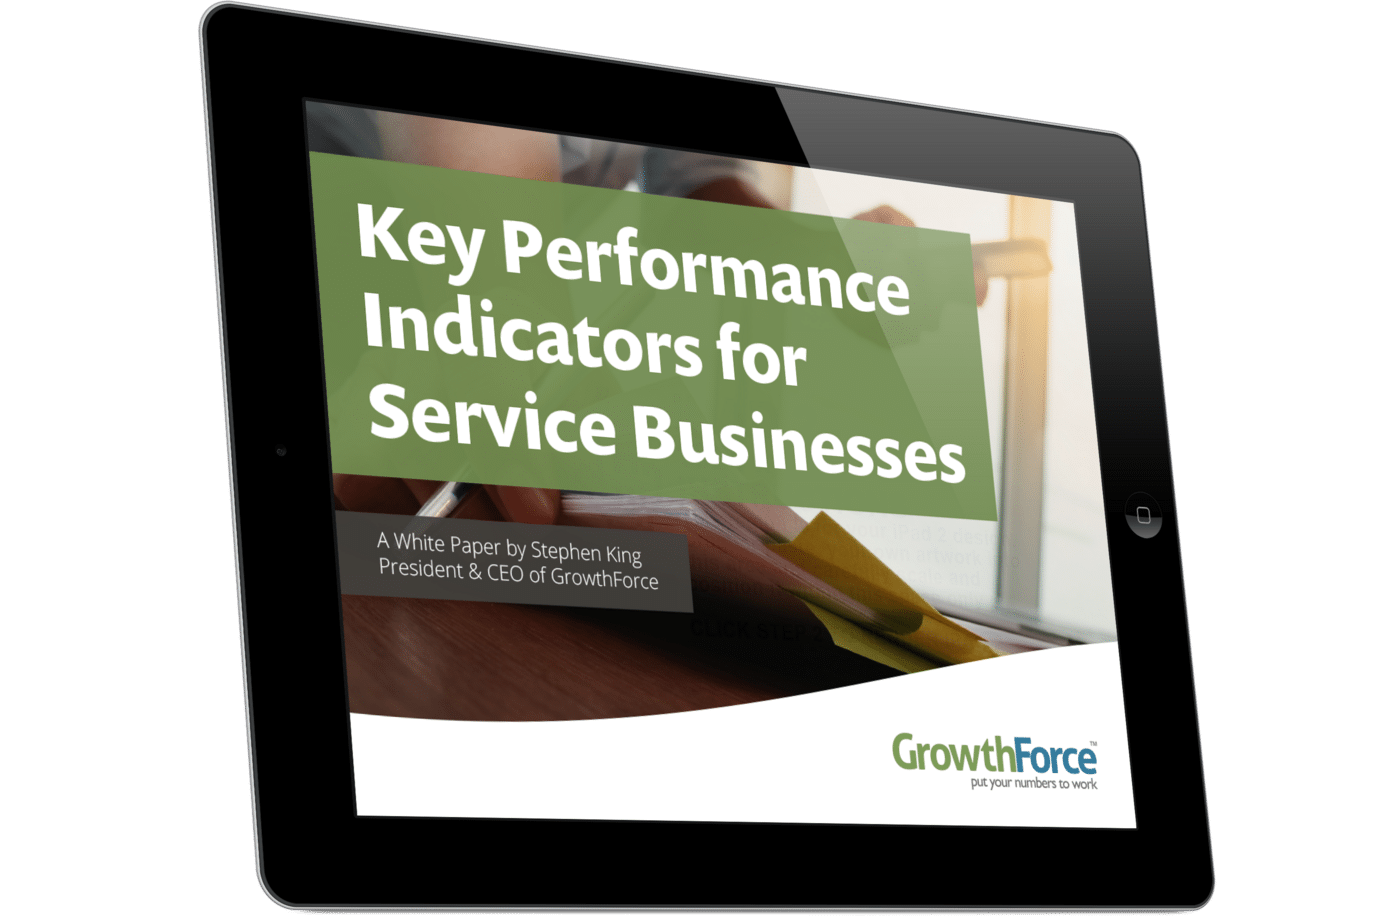 Key Performance Indicators for Service Businesses